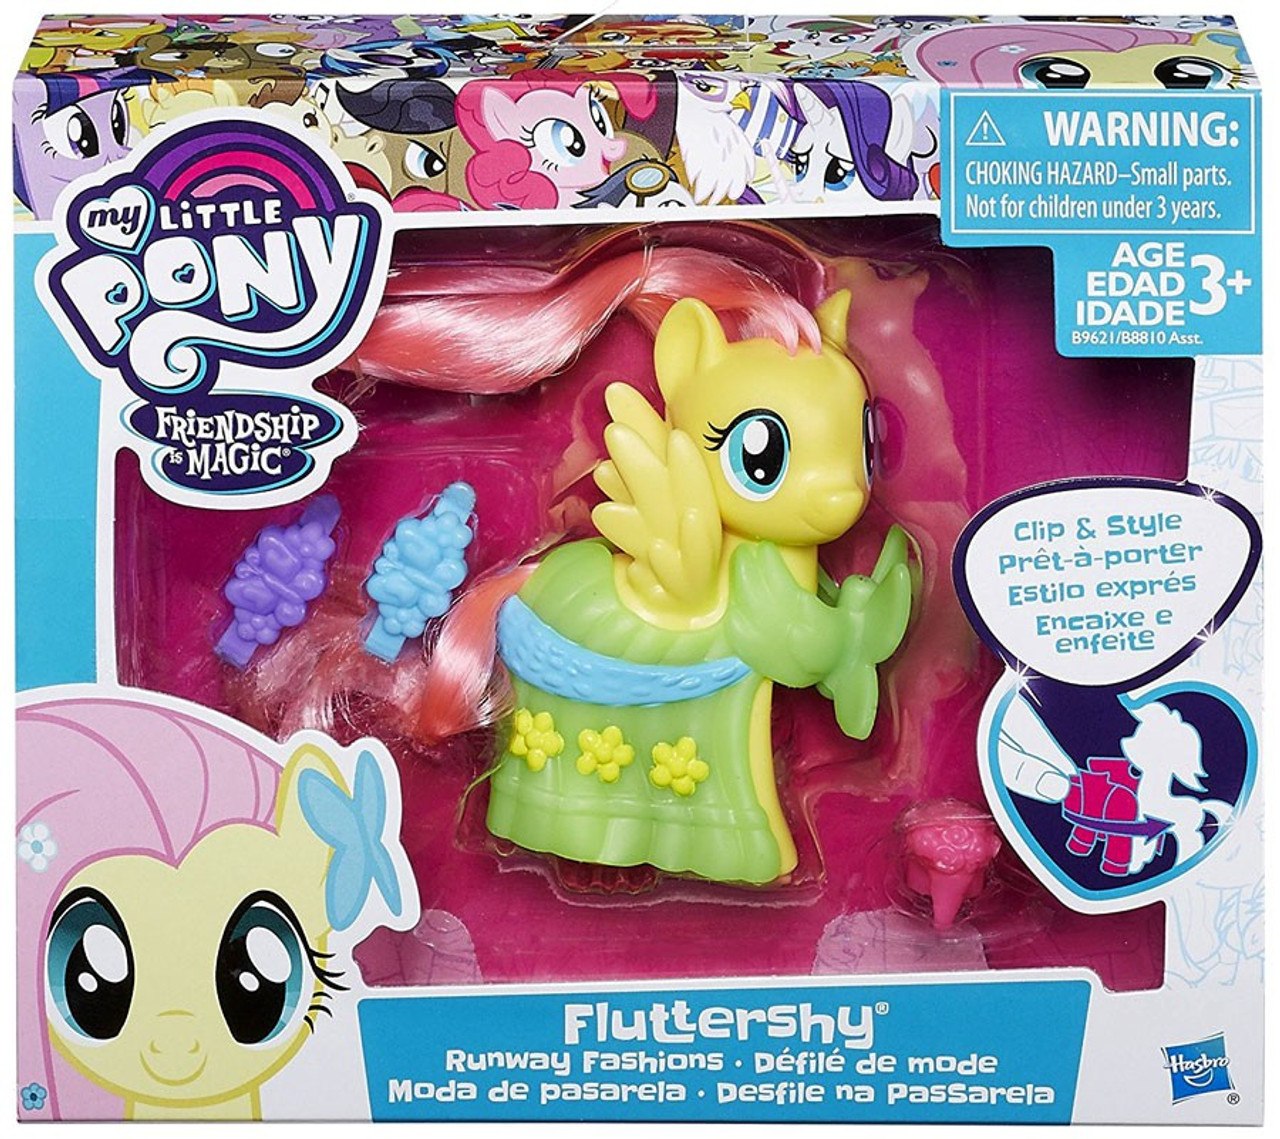 My Little Pony Friendship Is Magic Runway Fashions Fluttershy Figure